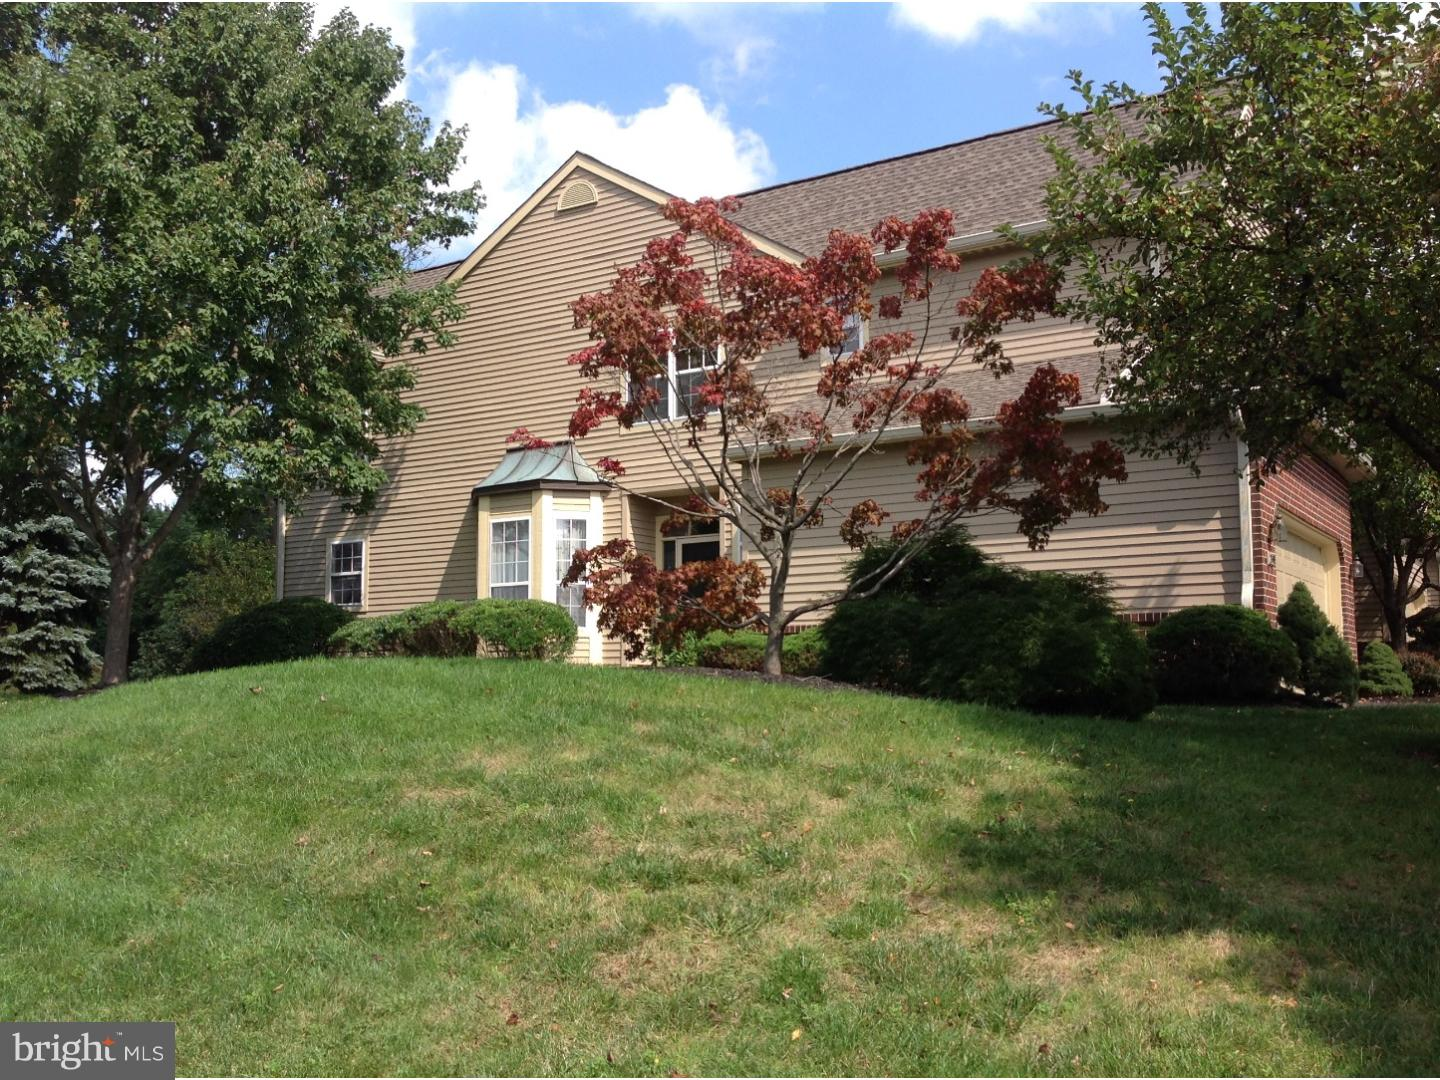 Single Family Home for Rent at 246 PINECREST Lane Lansdale, Pennsylvania 19446 United States